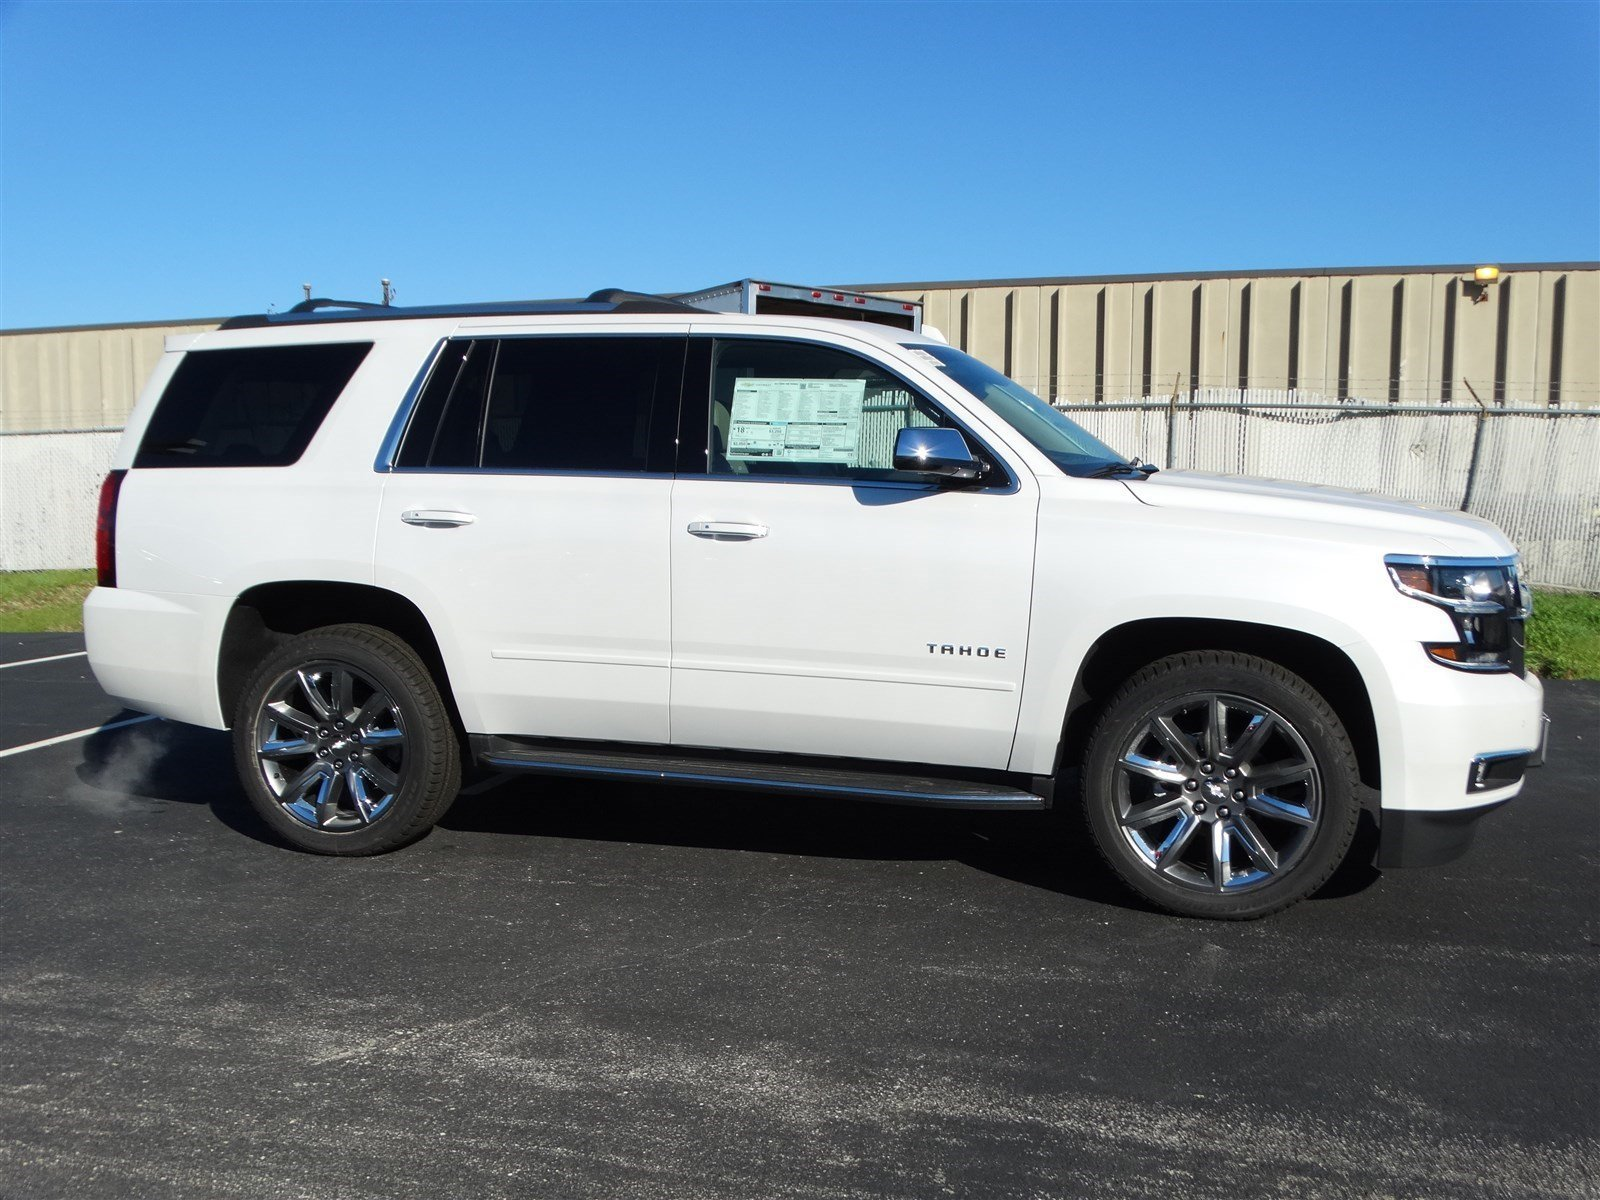 Chevrolet Of Naperville >> New 2017 Chevrolet Tahoe Premier ... 4WD, NAVIGATION, SUNROOF, 22 INCH WHEELS in Naperville # ...